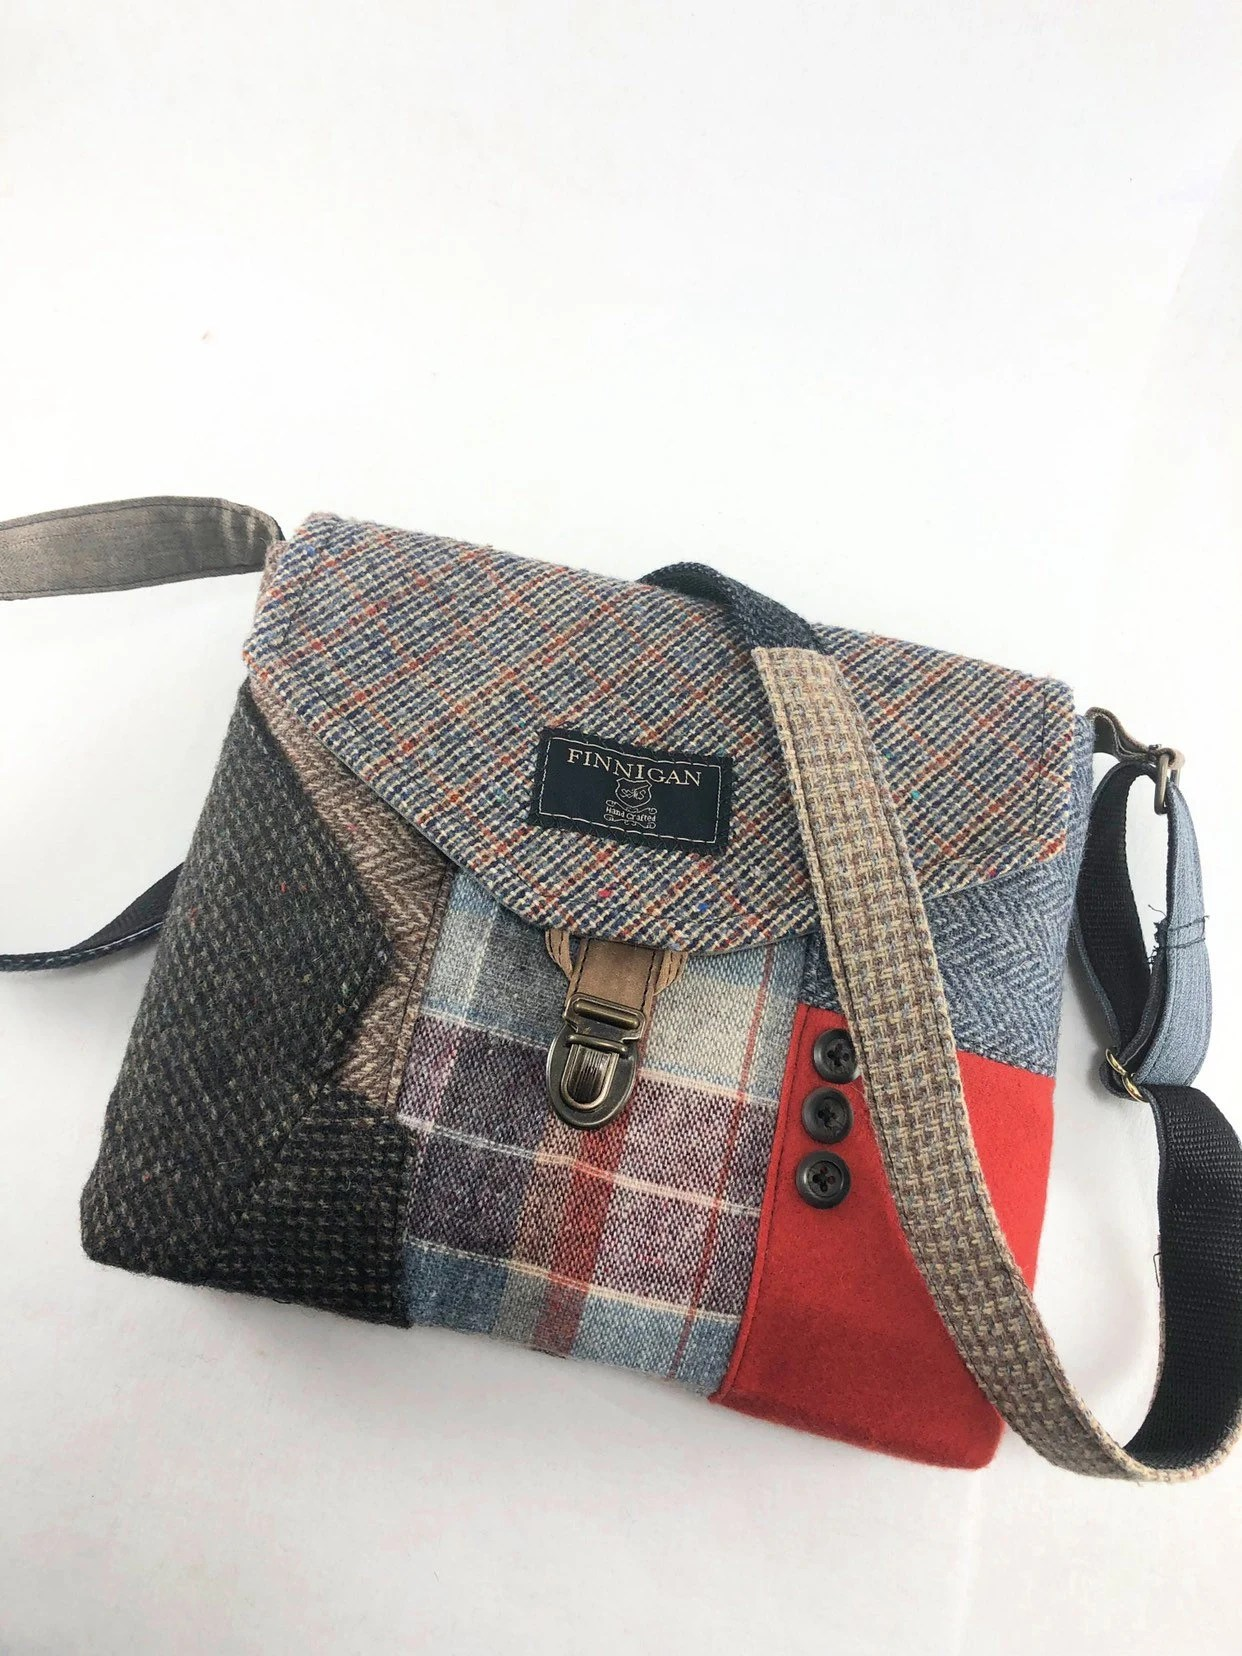 Tasche Recycling Recycling Tasche Umhängetasche Crossbody Tasche Recycling Crossbody Geldbeutel Wolle Iphone Tasche Recycling Herren Suitcoat Tasche Sofort Lieferbar